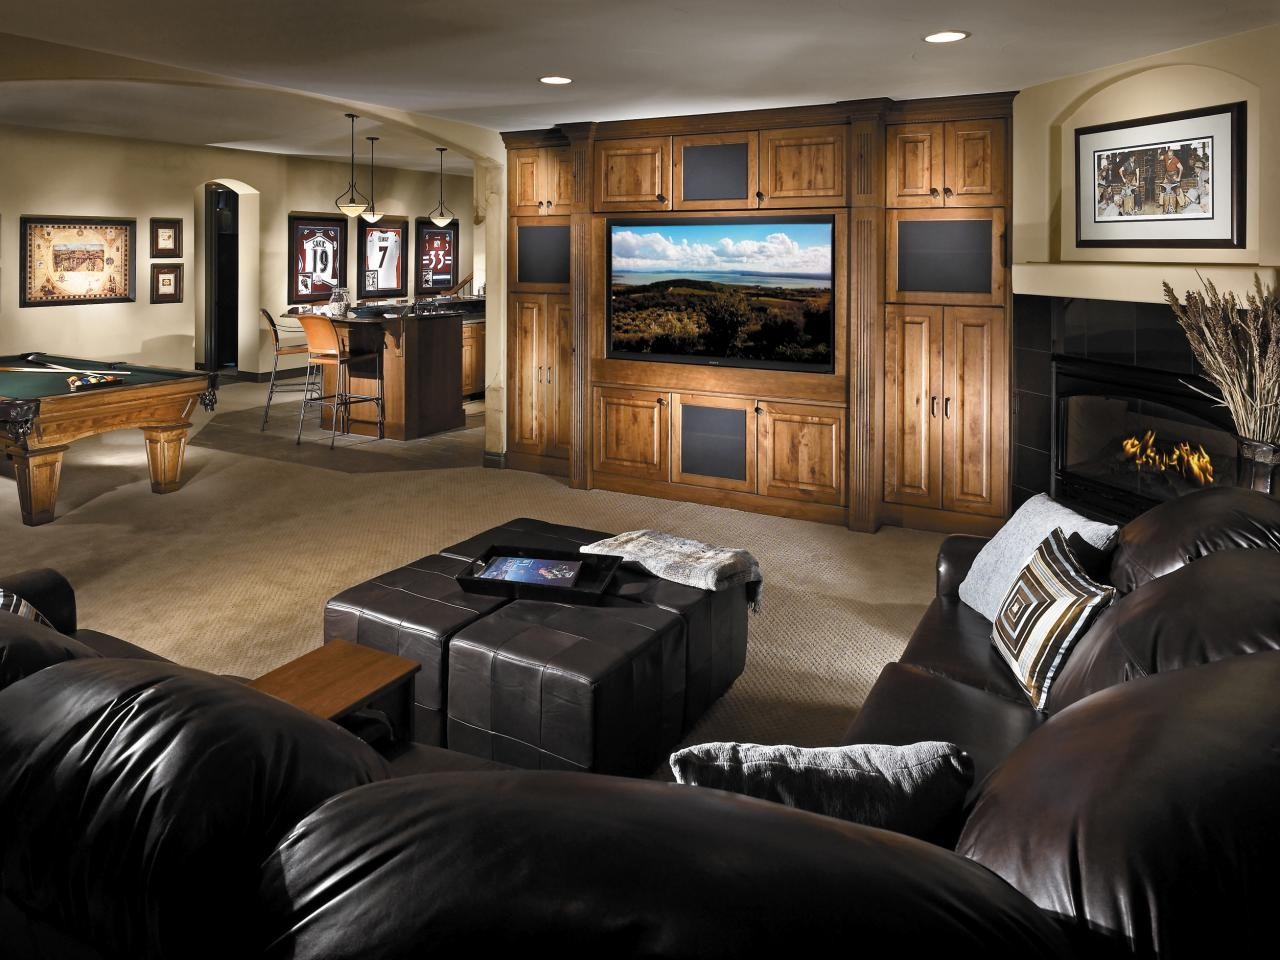 Home Basement Designs Interior Beauteous Basement Design And Layout  Hgtv Design Decoration